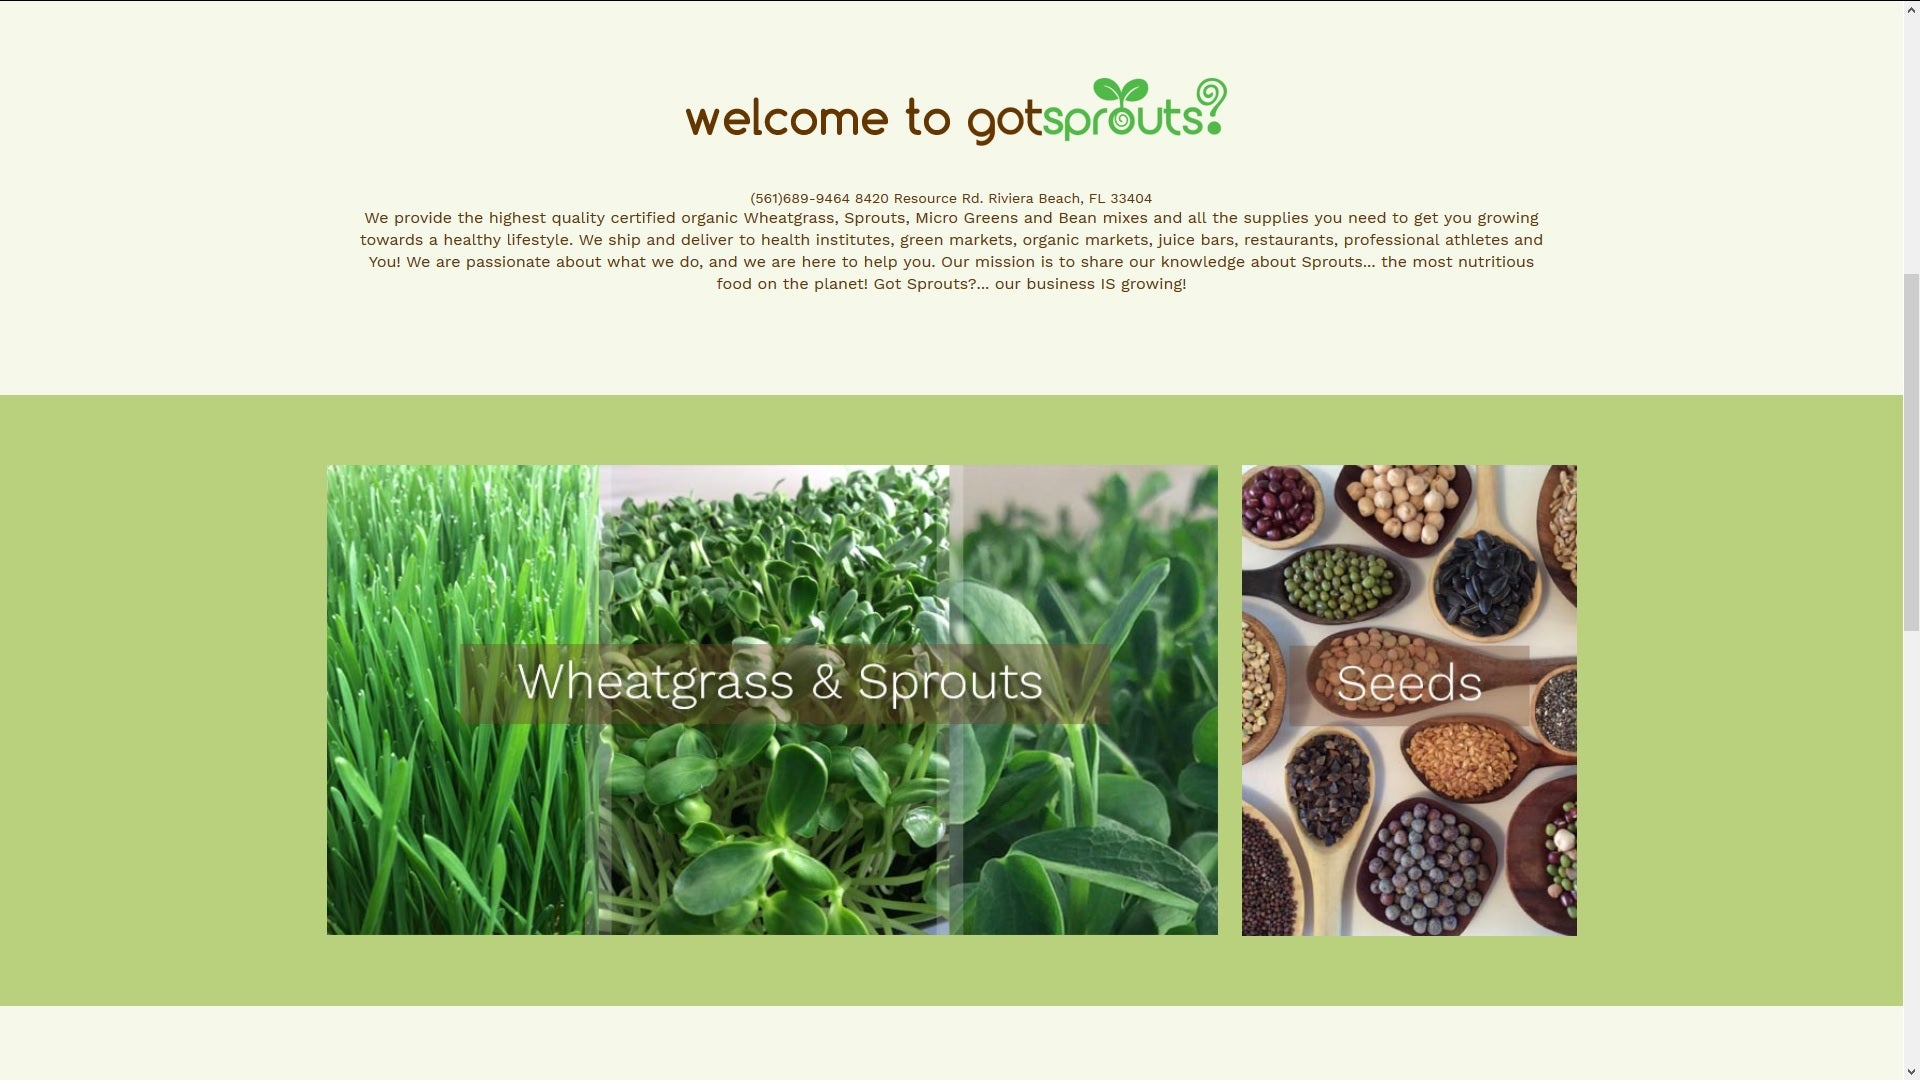 Visit Got Sprouts